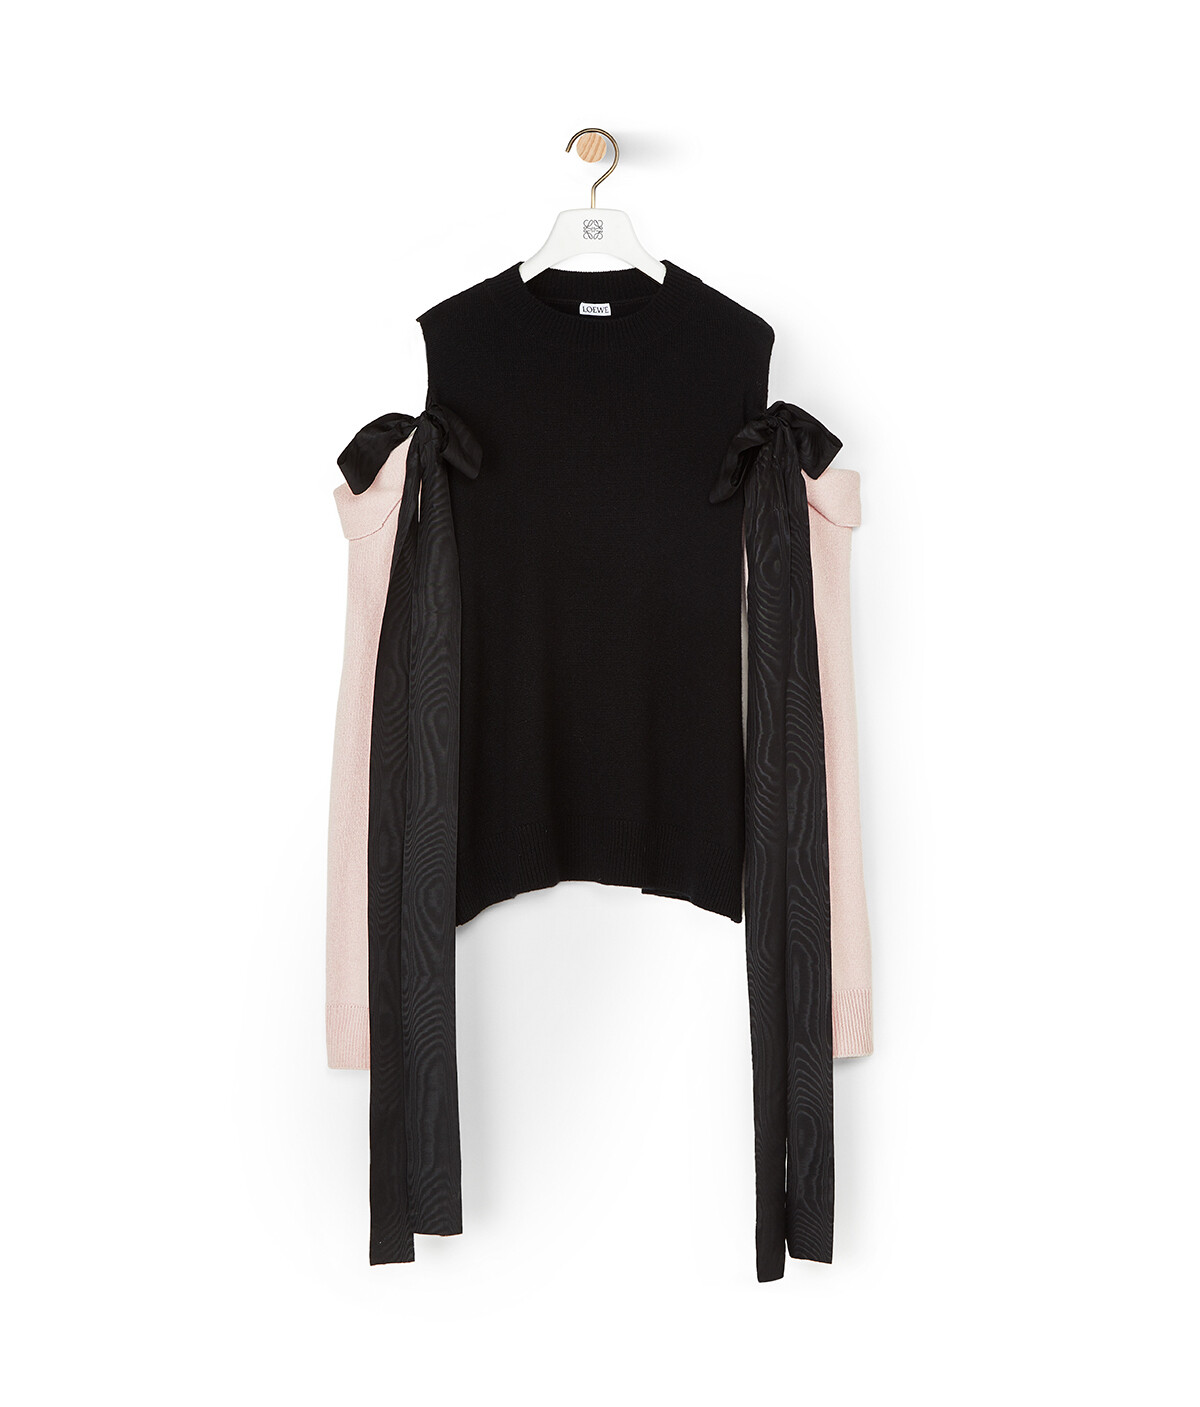 LOEWE Off Shoulder Sweater Bow Negro/Rosa Bebe front